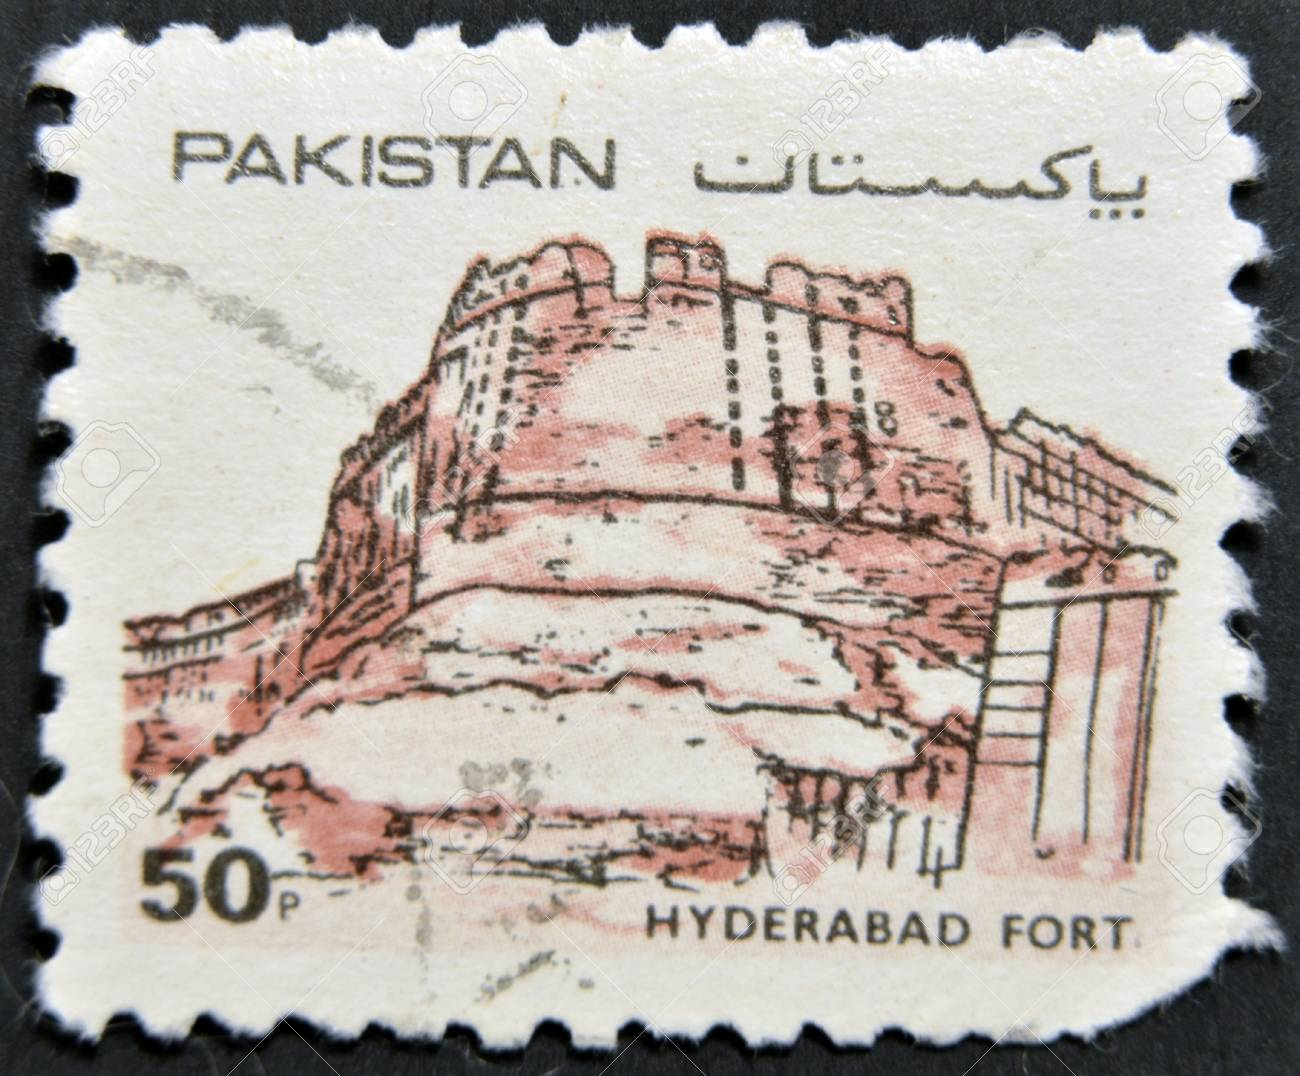 PAKISTAN - CIRCA 1986: A stamp printed in the Pakistan shows Hyderabd Fort, circa 1986 Stock Photo - 12207324